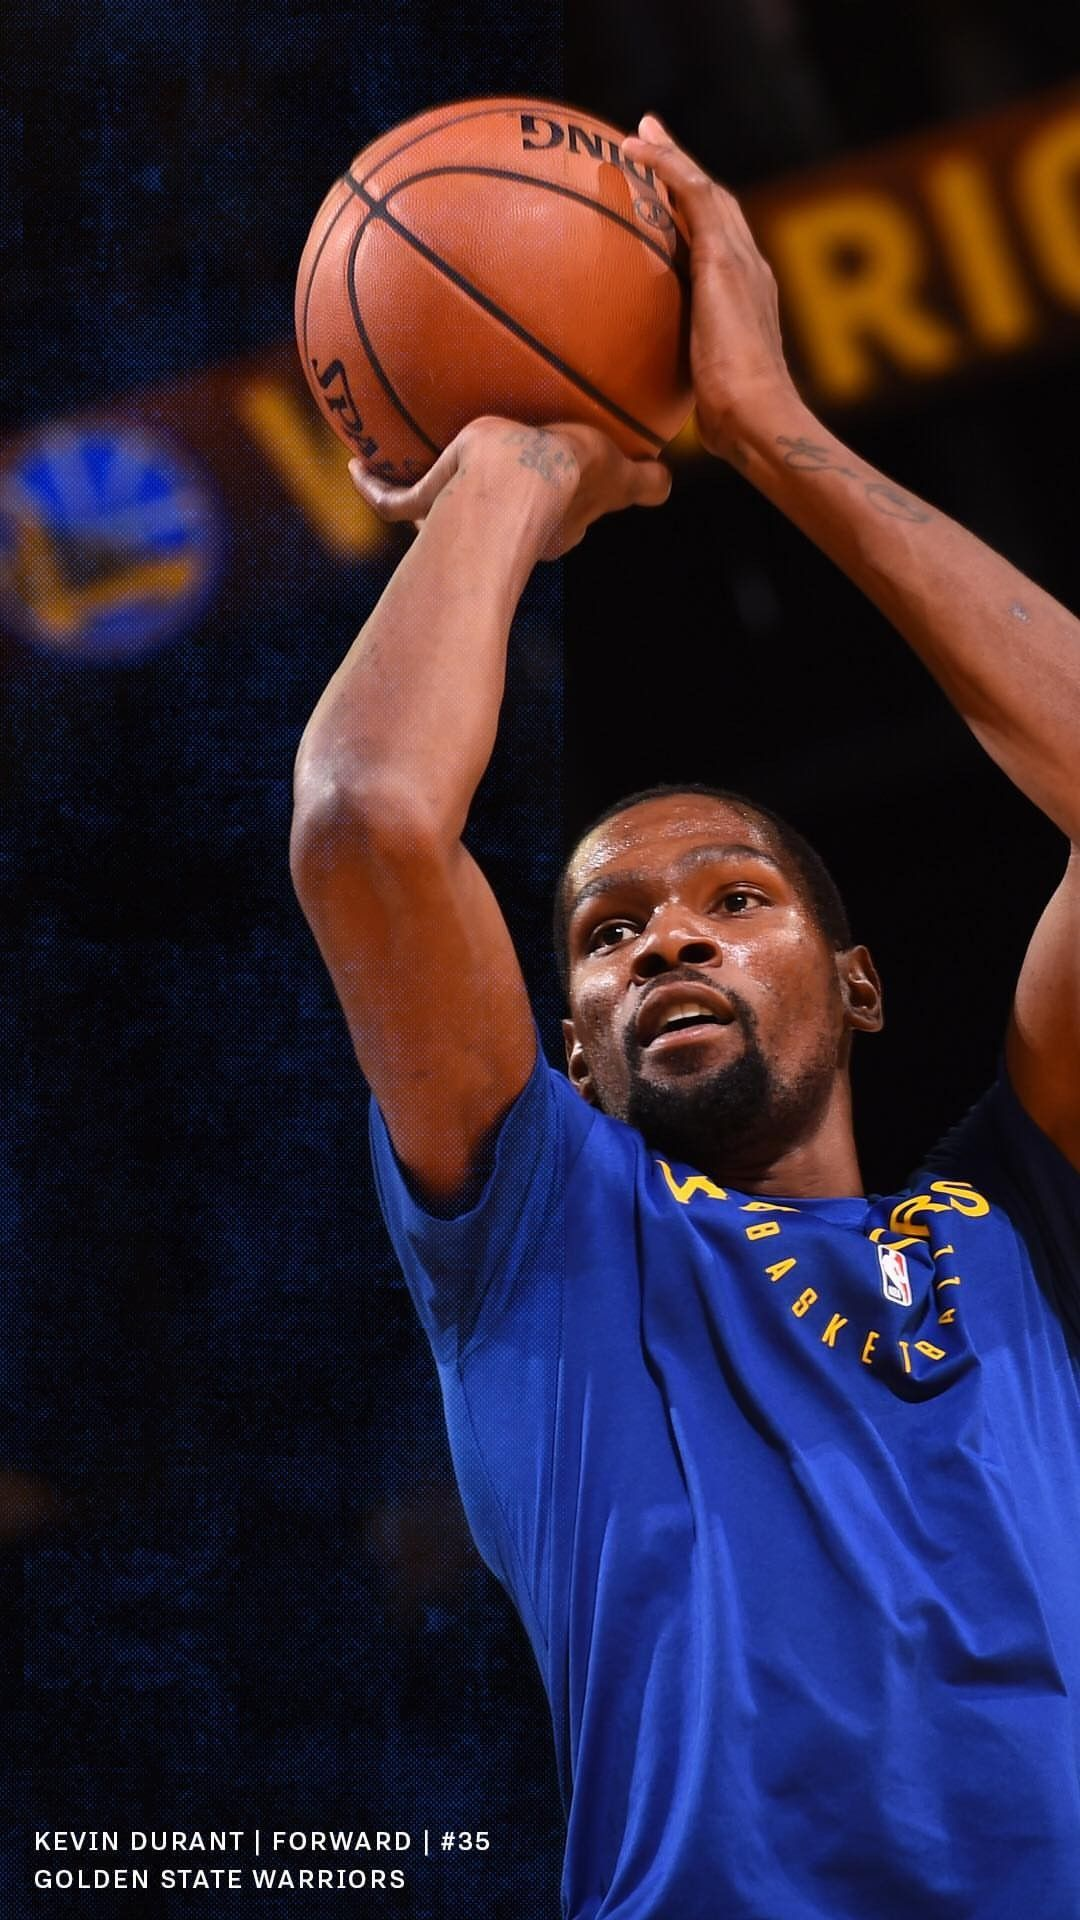 Kevin Durant Wallpaper Kevin Durant Wallpapers, 2018 Nba Champions, Durant Nba, Nba Players